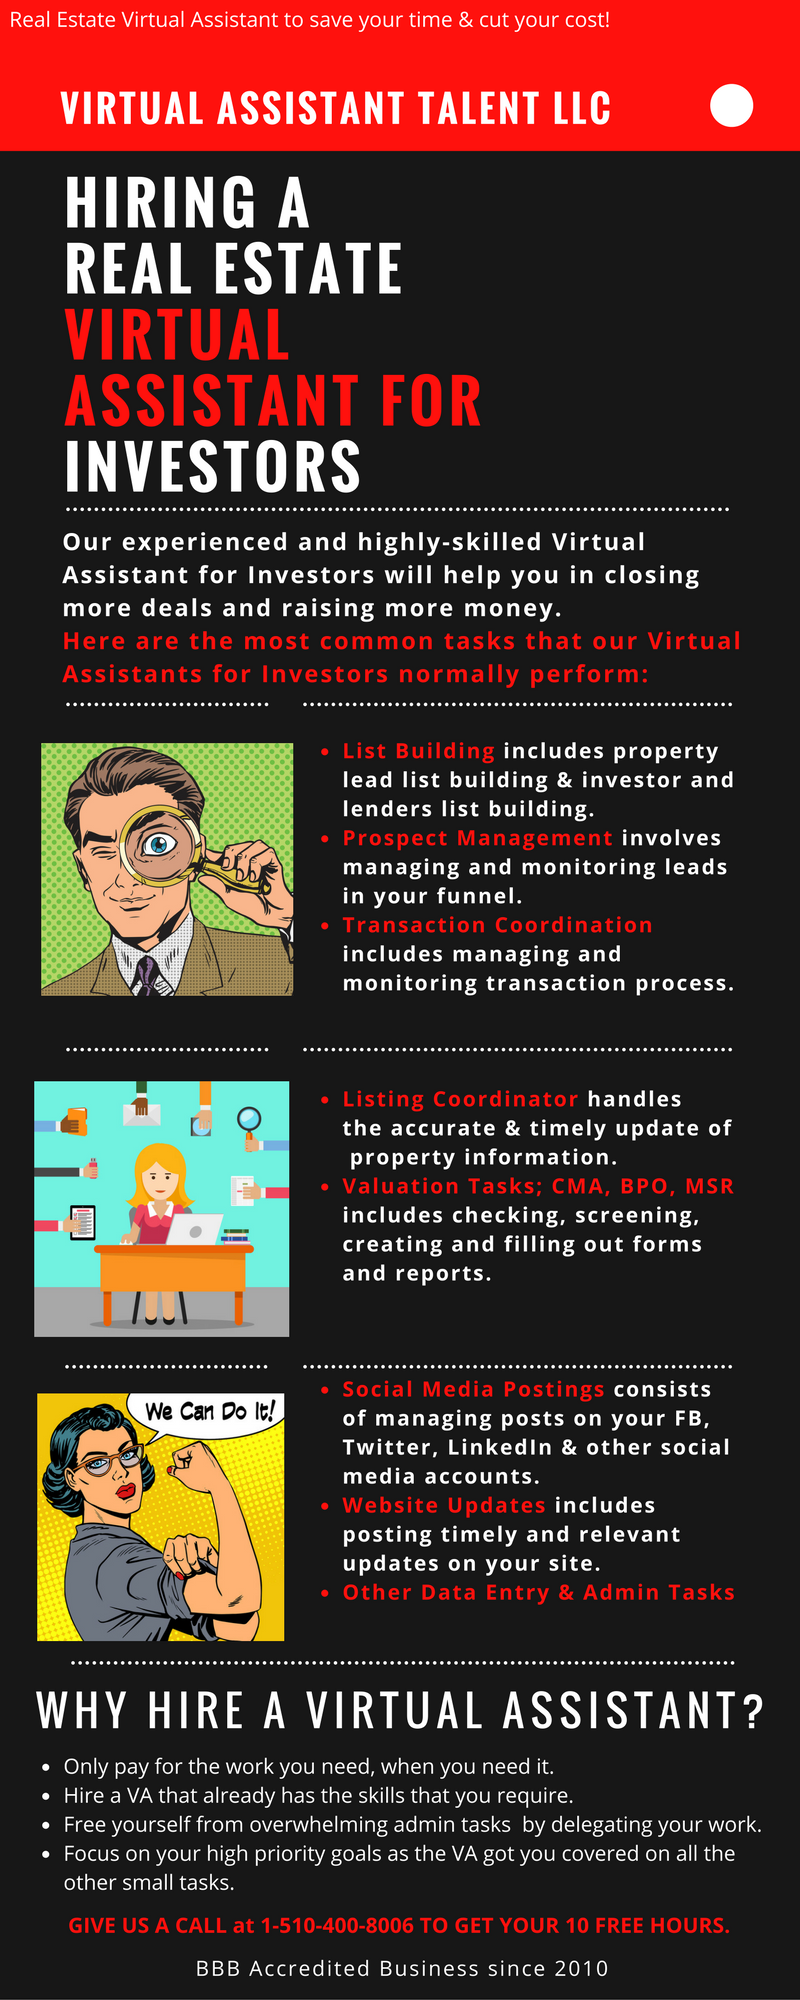 real estate va for investors. in a nutshell, our real estate virtual